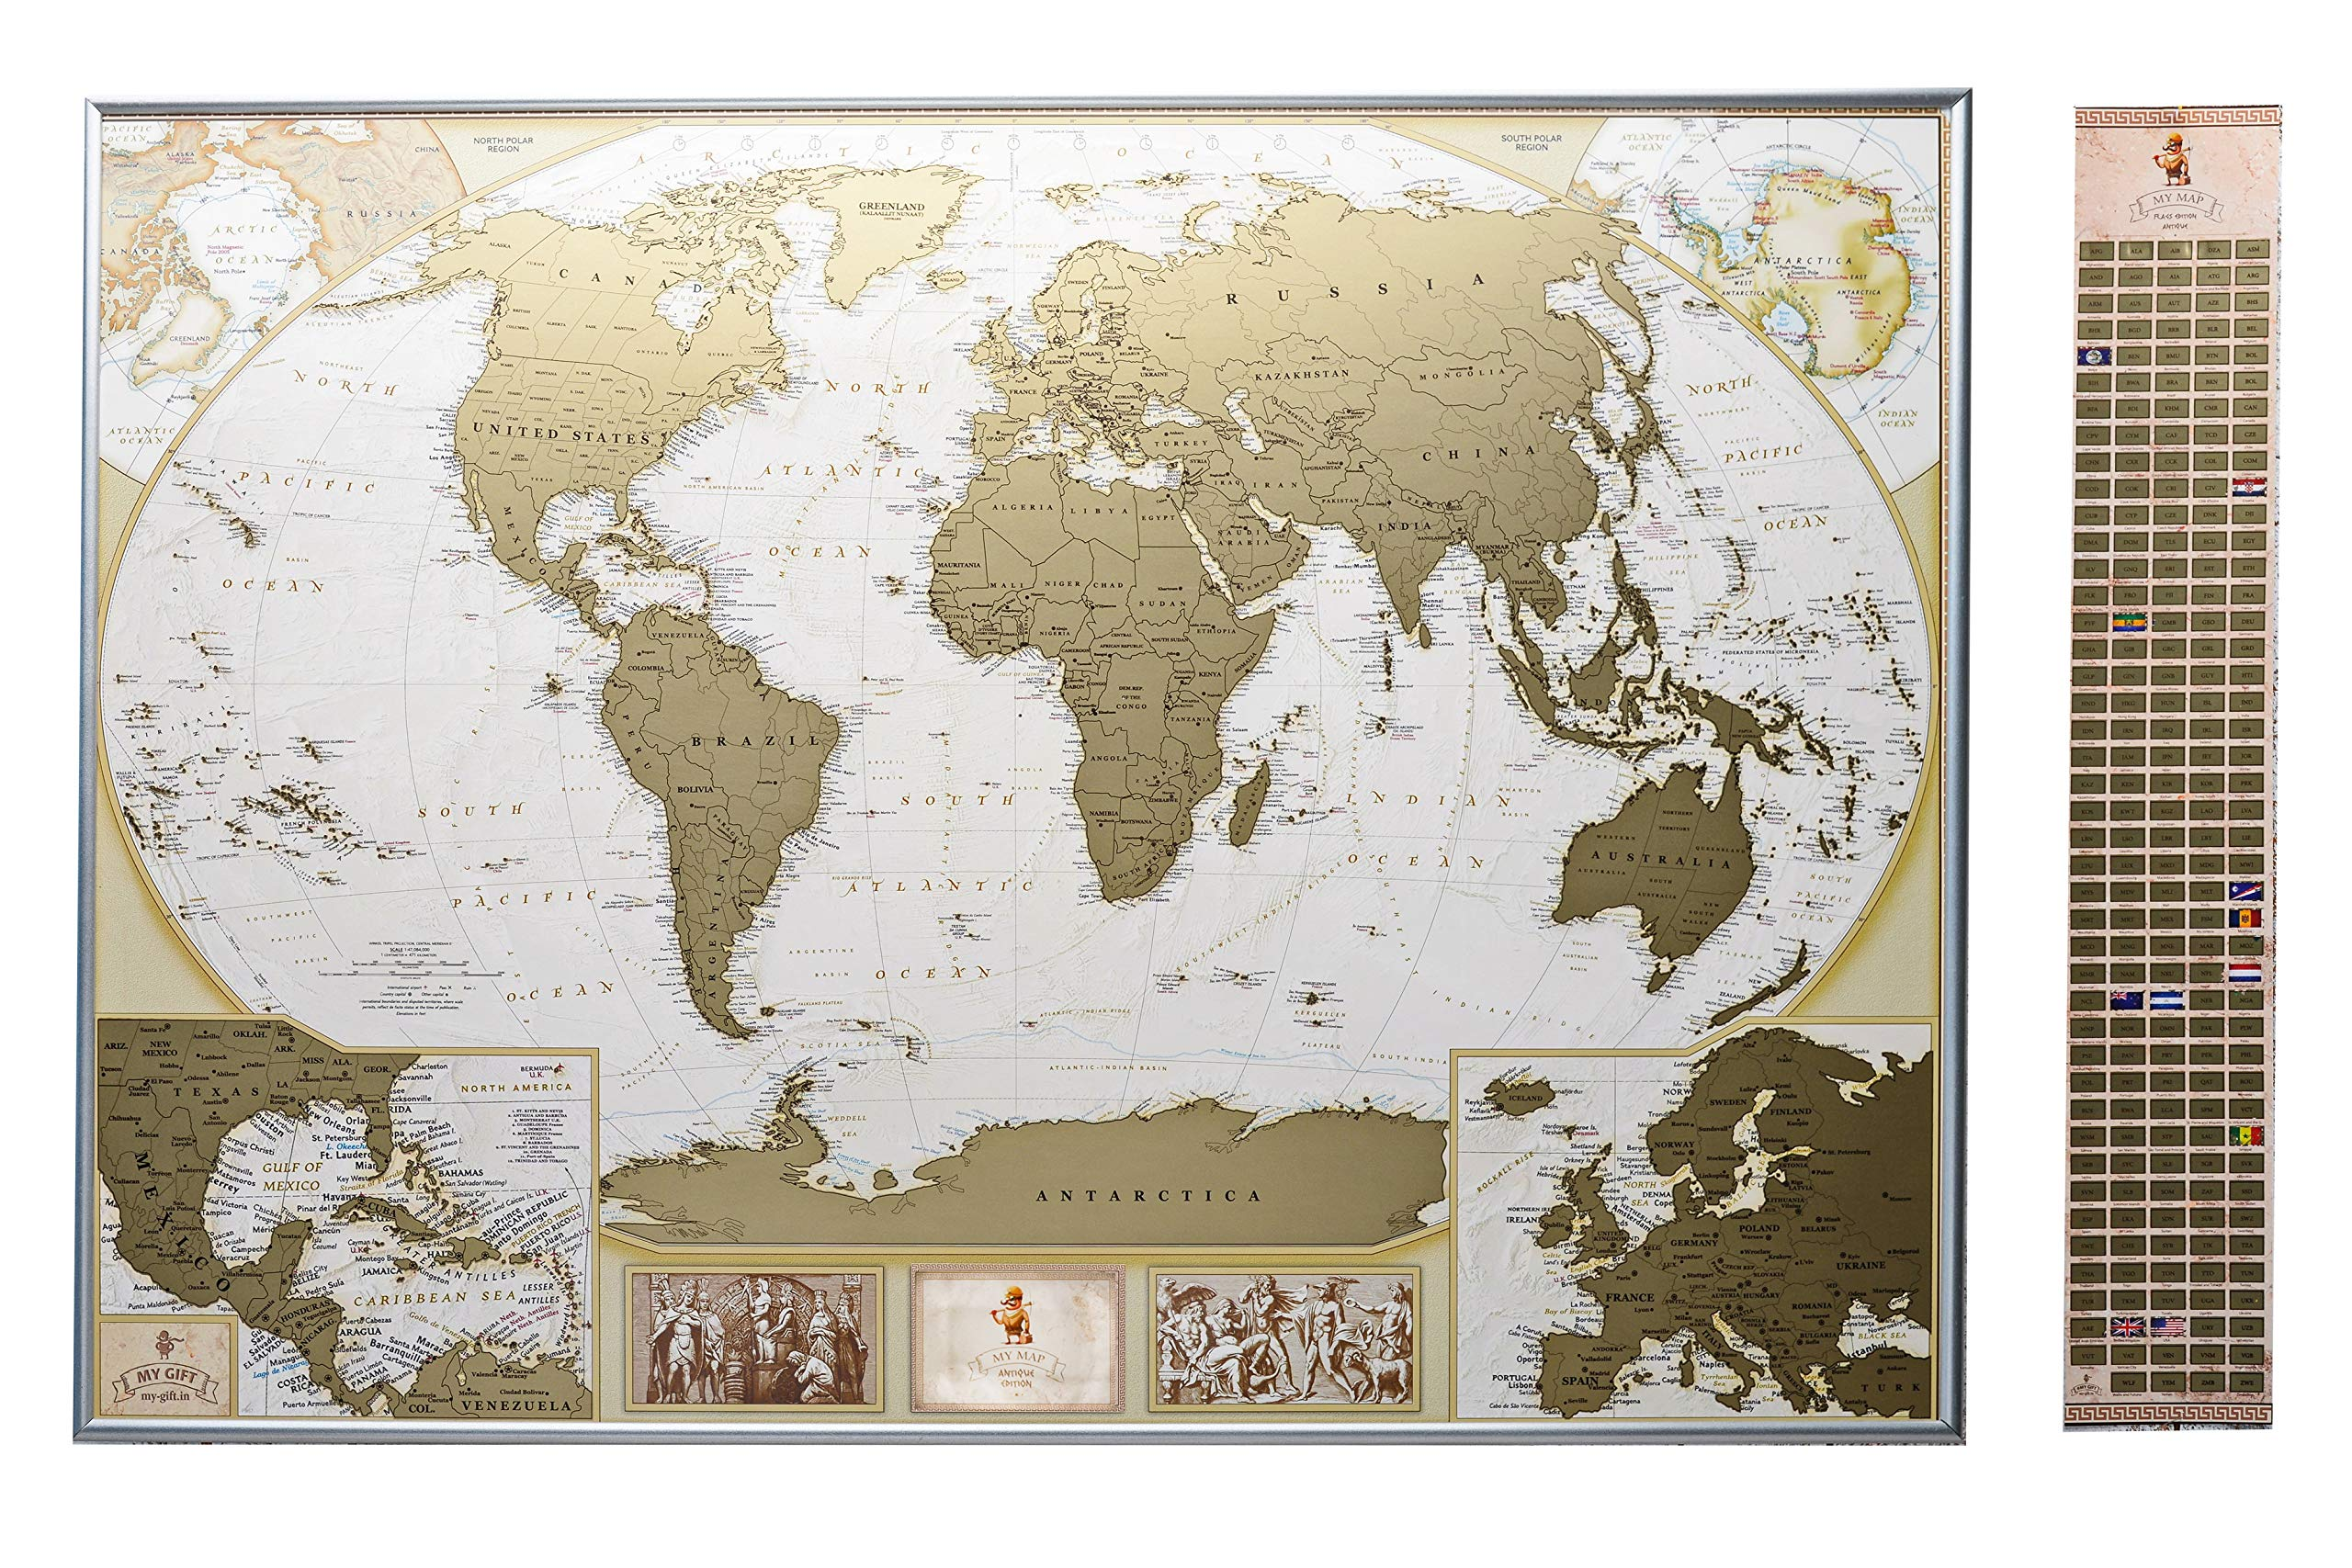 MyMap Deluxe Large World Scratch Off Map w/ EnLarge Europe and Caribbeans Map | 35 x 25 inc Push Pin Travel Map To Mark 10.000 Cities  | Anniversary Birthday Idea